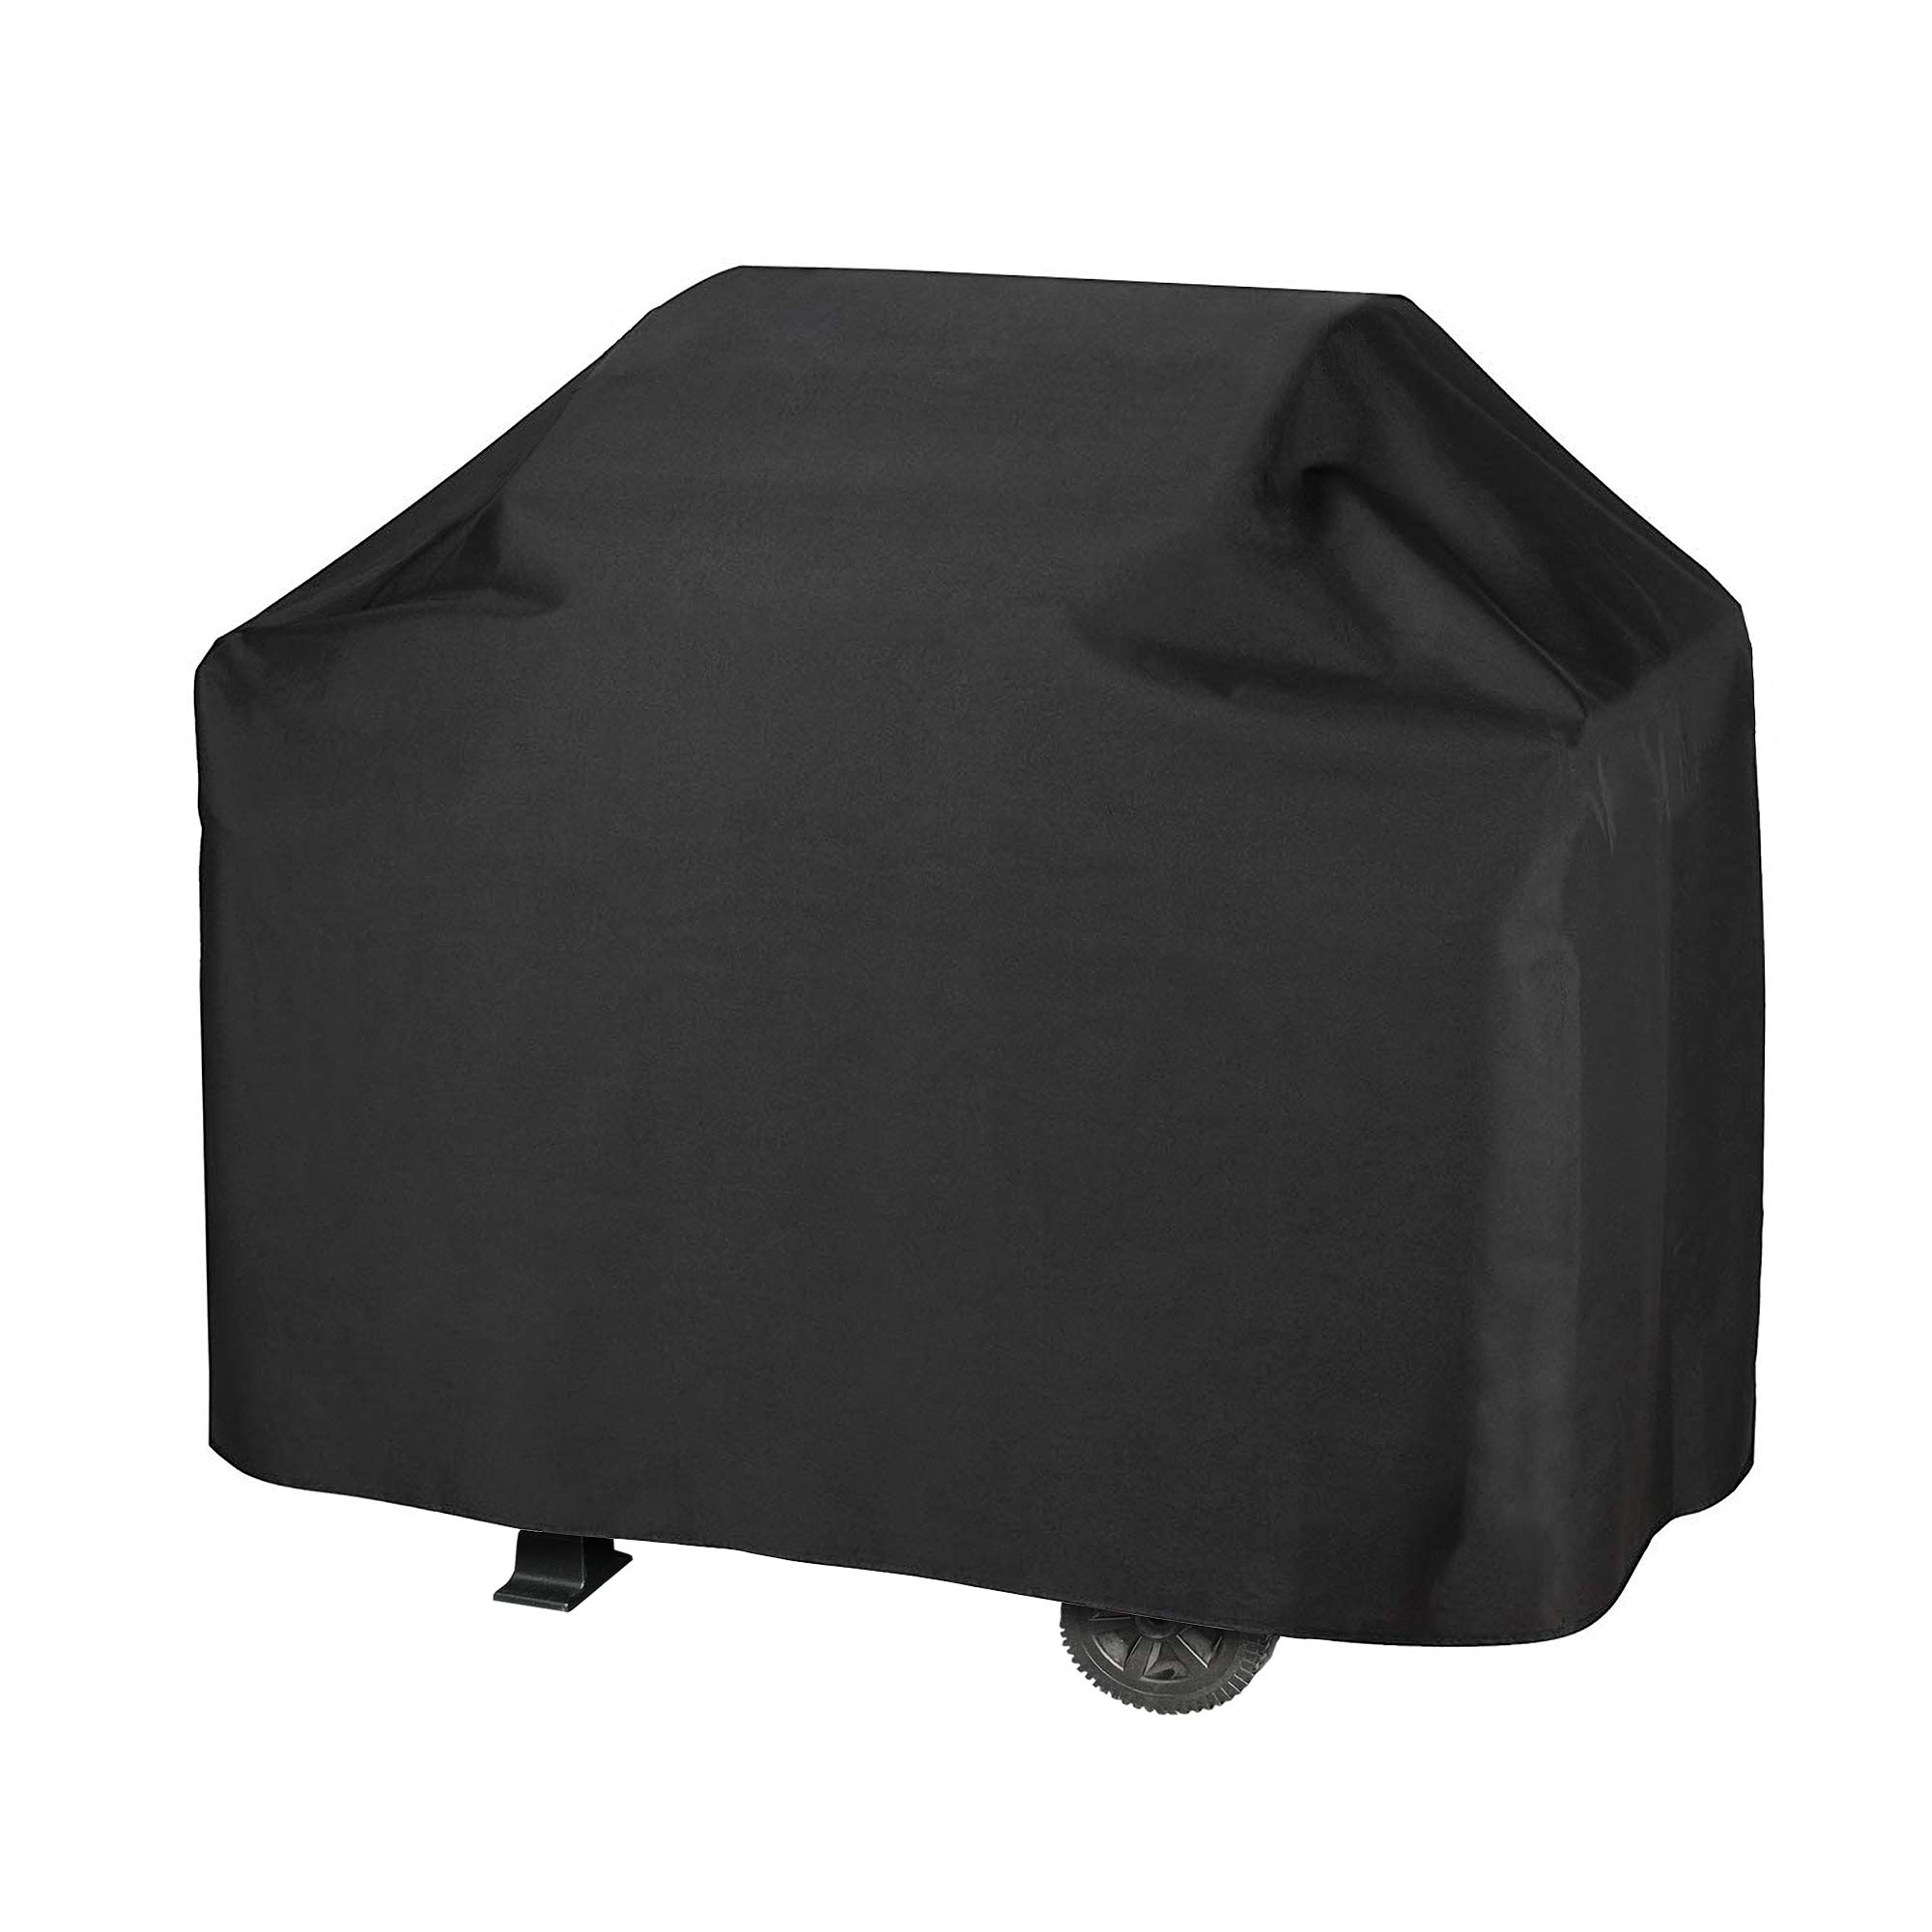 iCOVER Grill Cover-55 Inch Water Proof Patio Outdoor Black BBQ Barbecue Smoker/Grill Cover G11602-1 for Weber Char-Broil Brinkmann Holland JennAir and More by i COVER